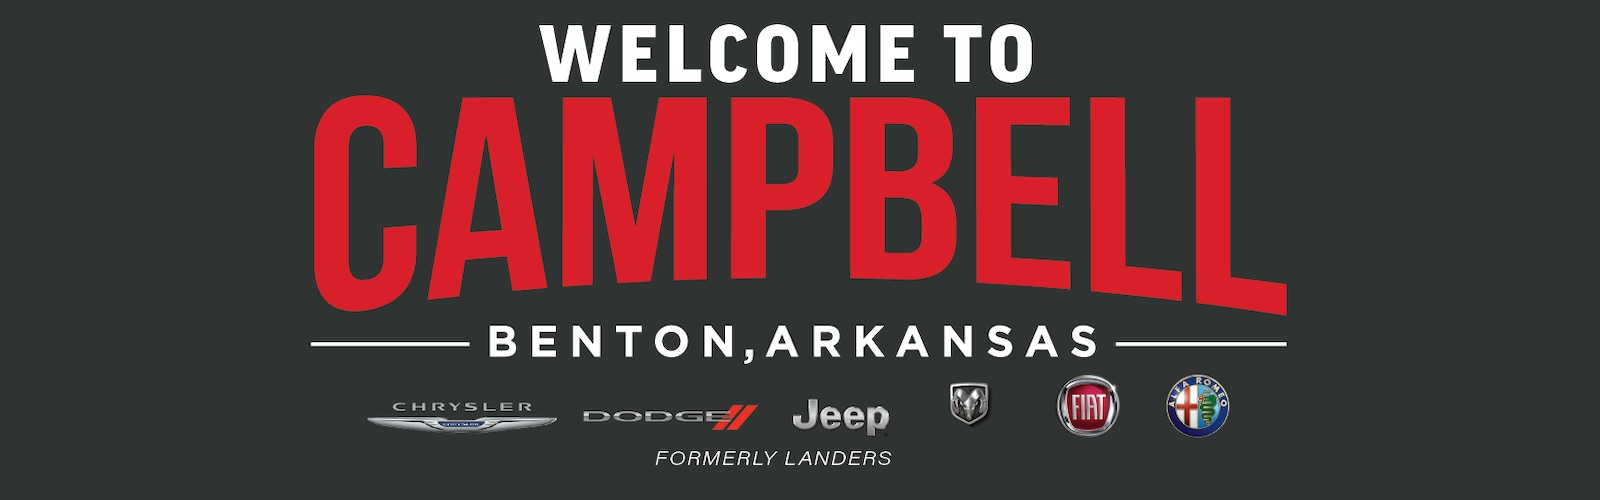 Steve Landers Dodge >> Campbell Chrysler Dodge Jeep Ram New Dodge Jeep Fiat